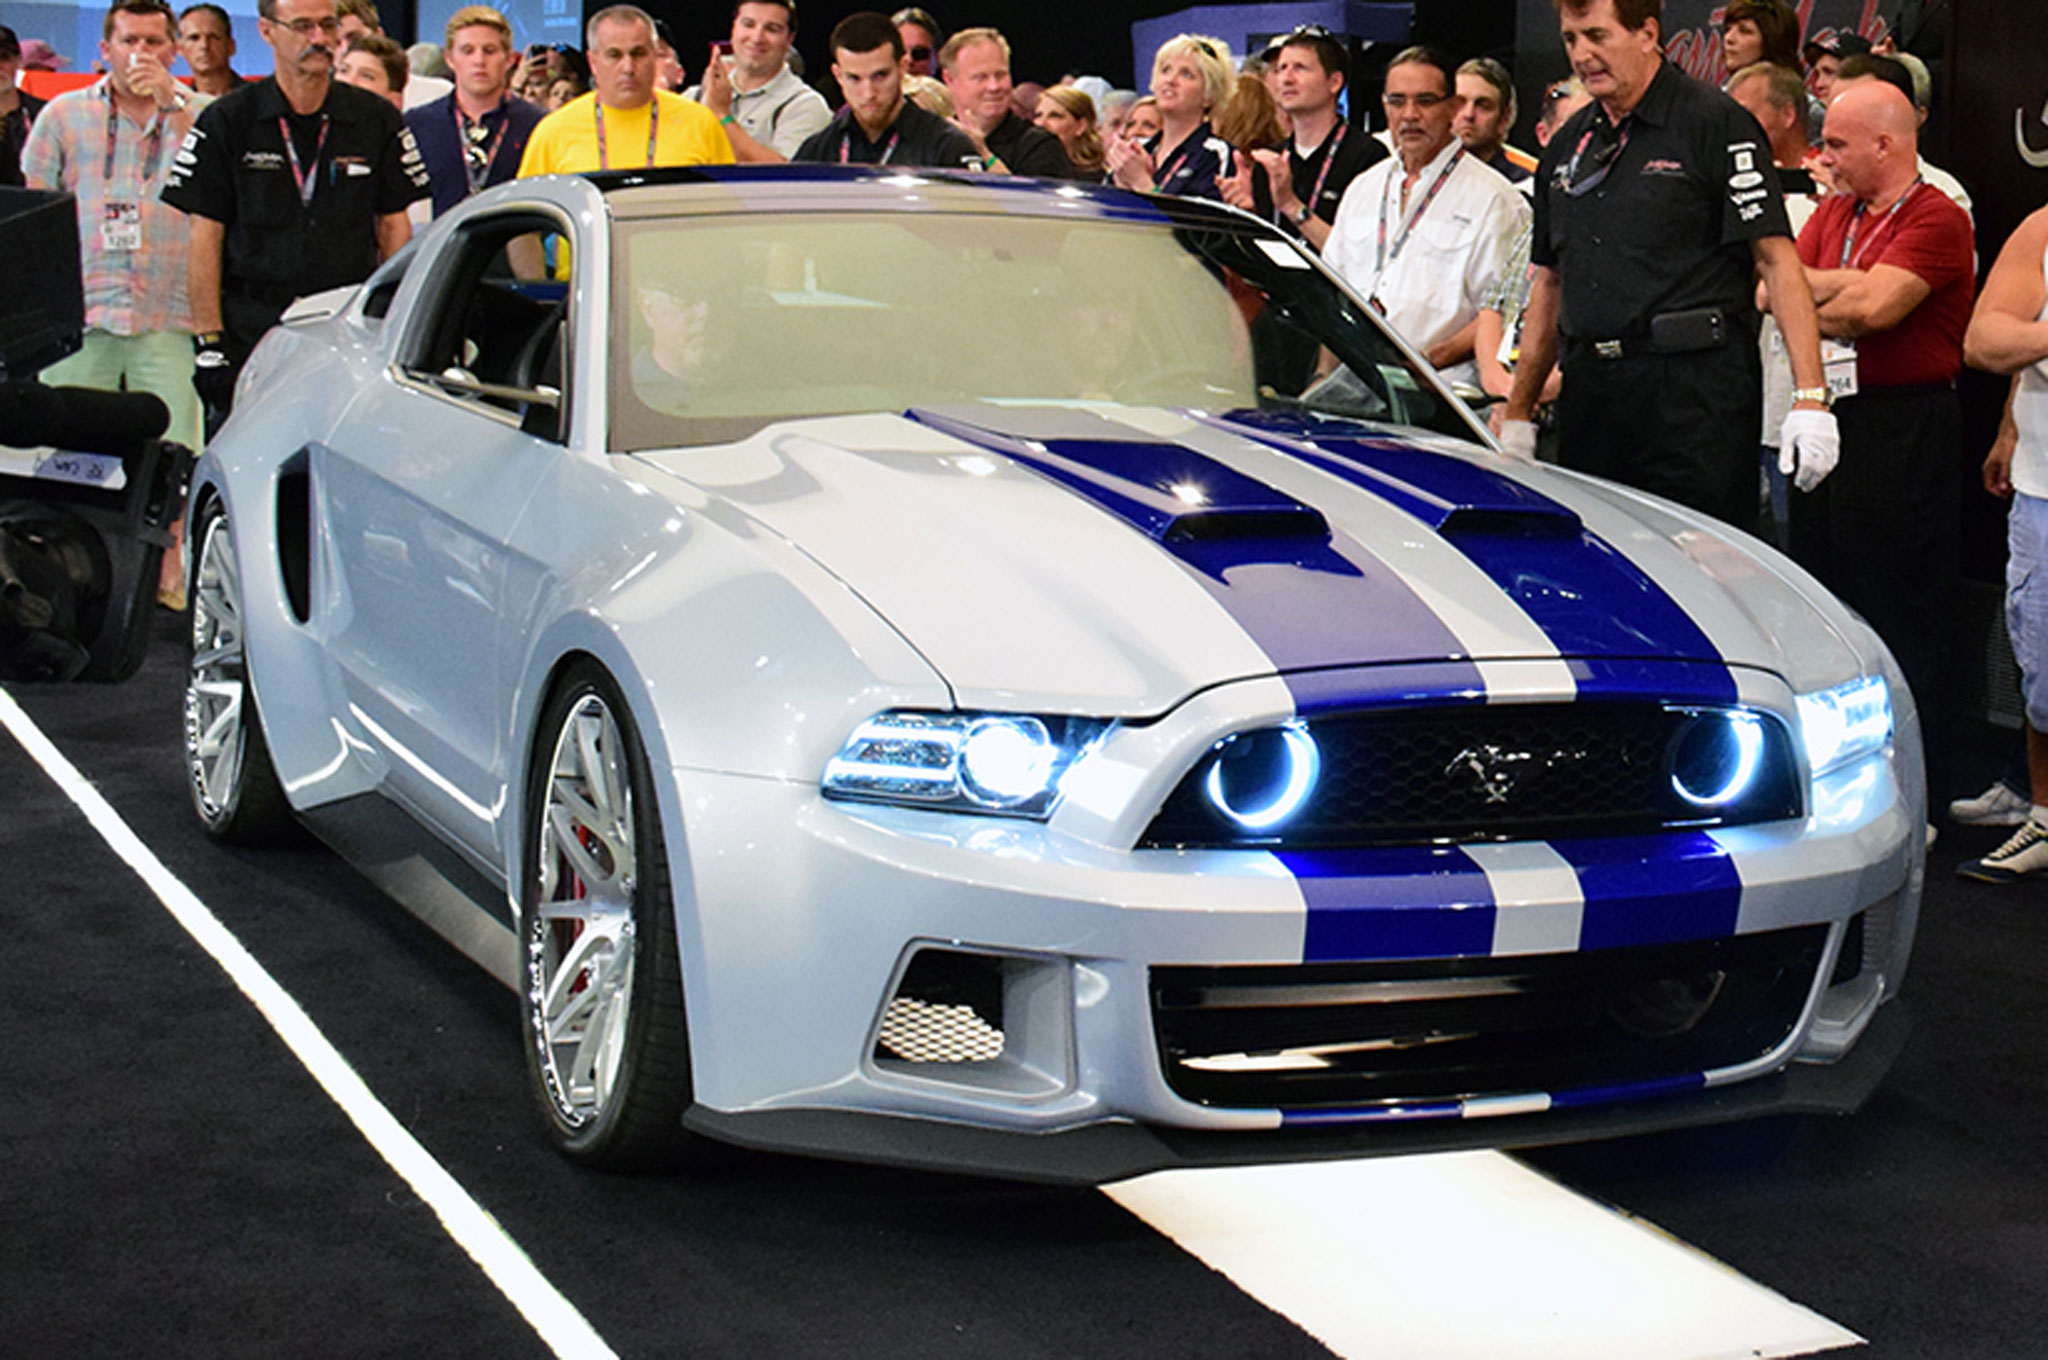 Need for speed ford mustang auctioned for 300000 automobile